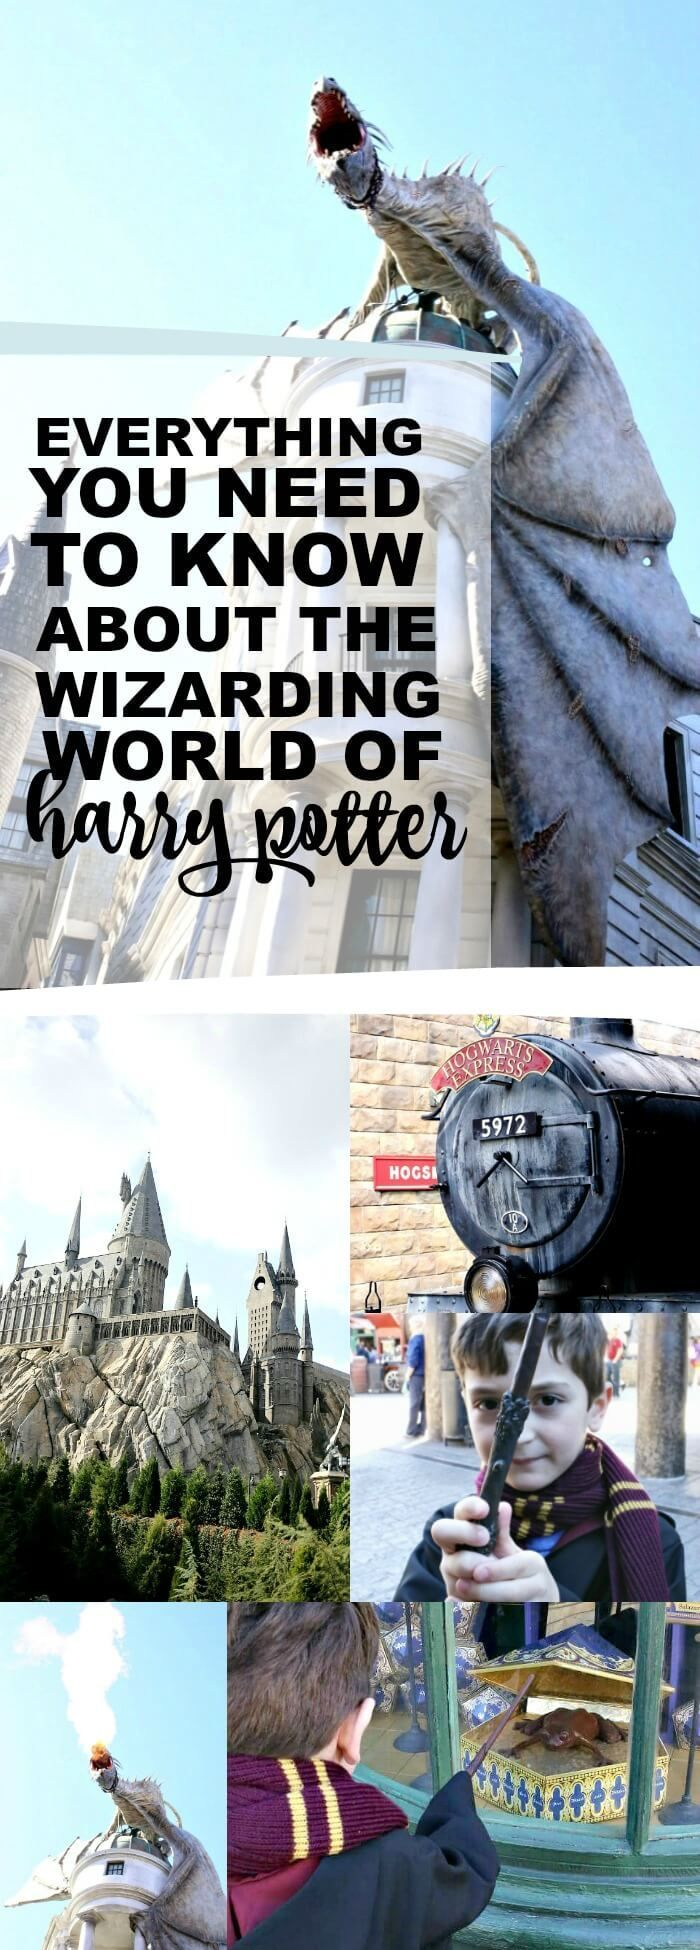 Everything you need to know about visiting the Wizarding World of Harry Potter at Universal Studios and Islands of Adventure via @spaceshipslb